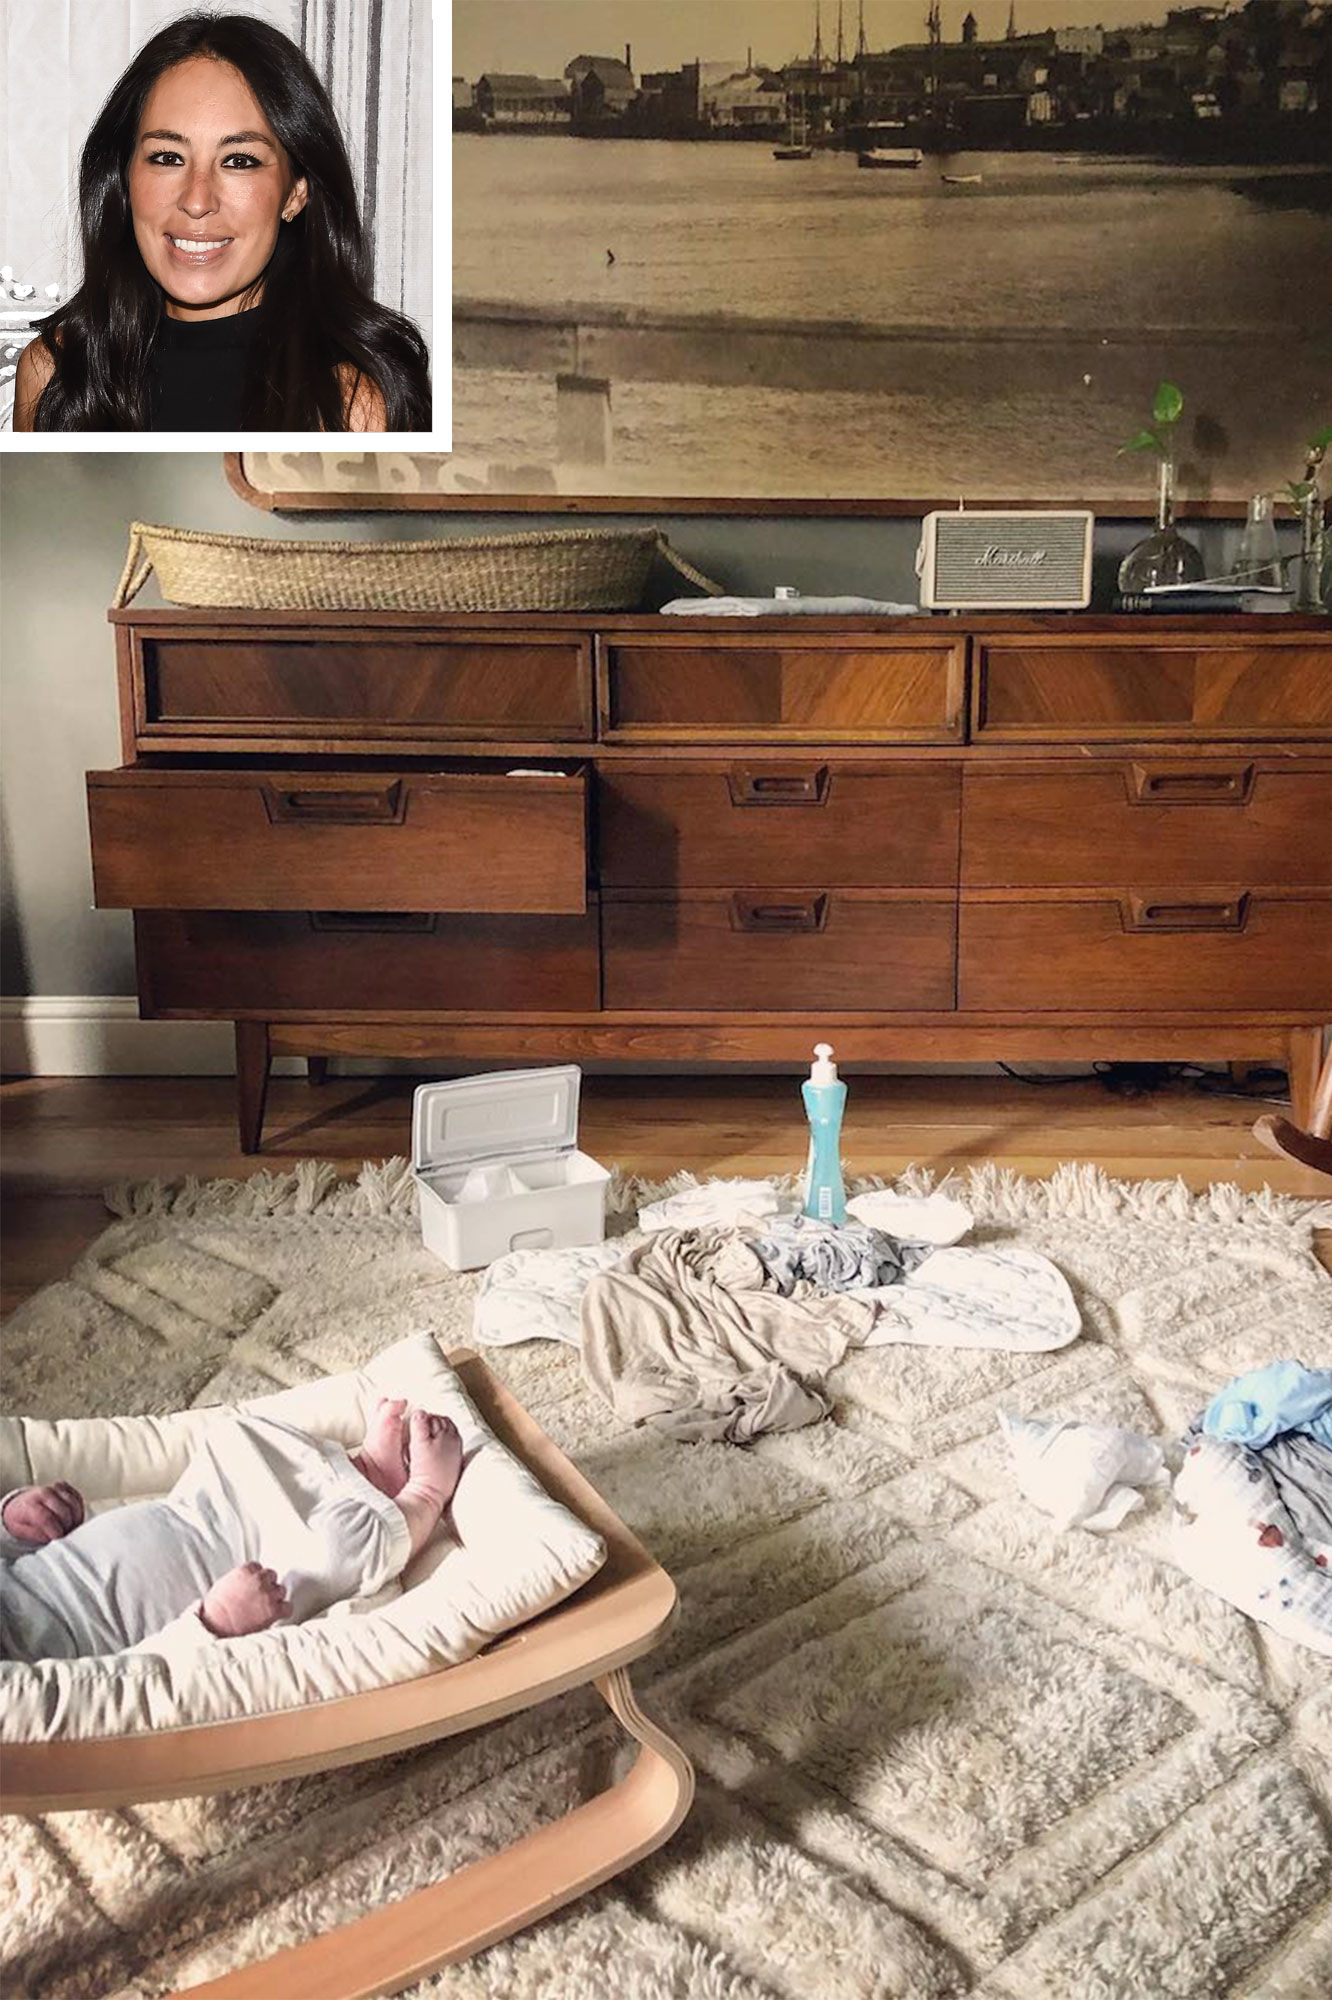 Joanna Gaines Shares Details About Where to Get Some of the Products in Son Crew's Nursery